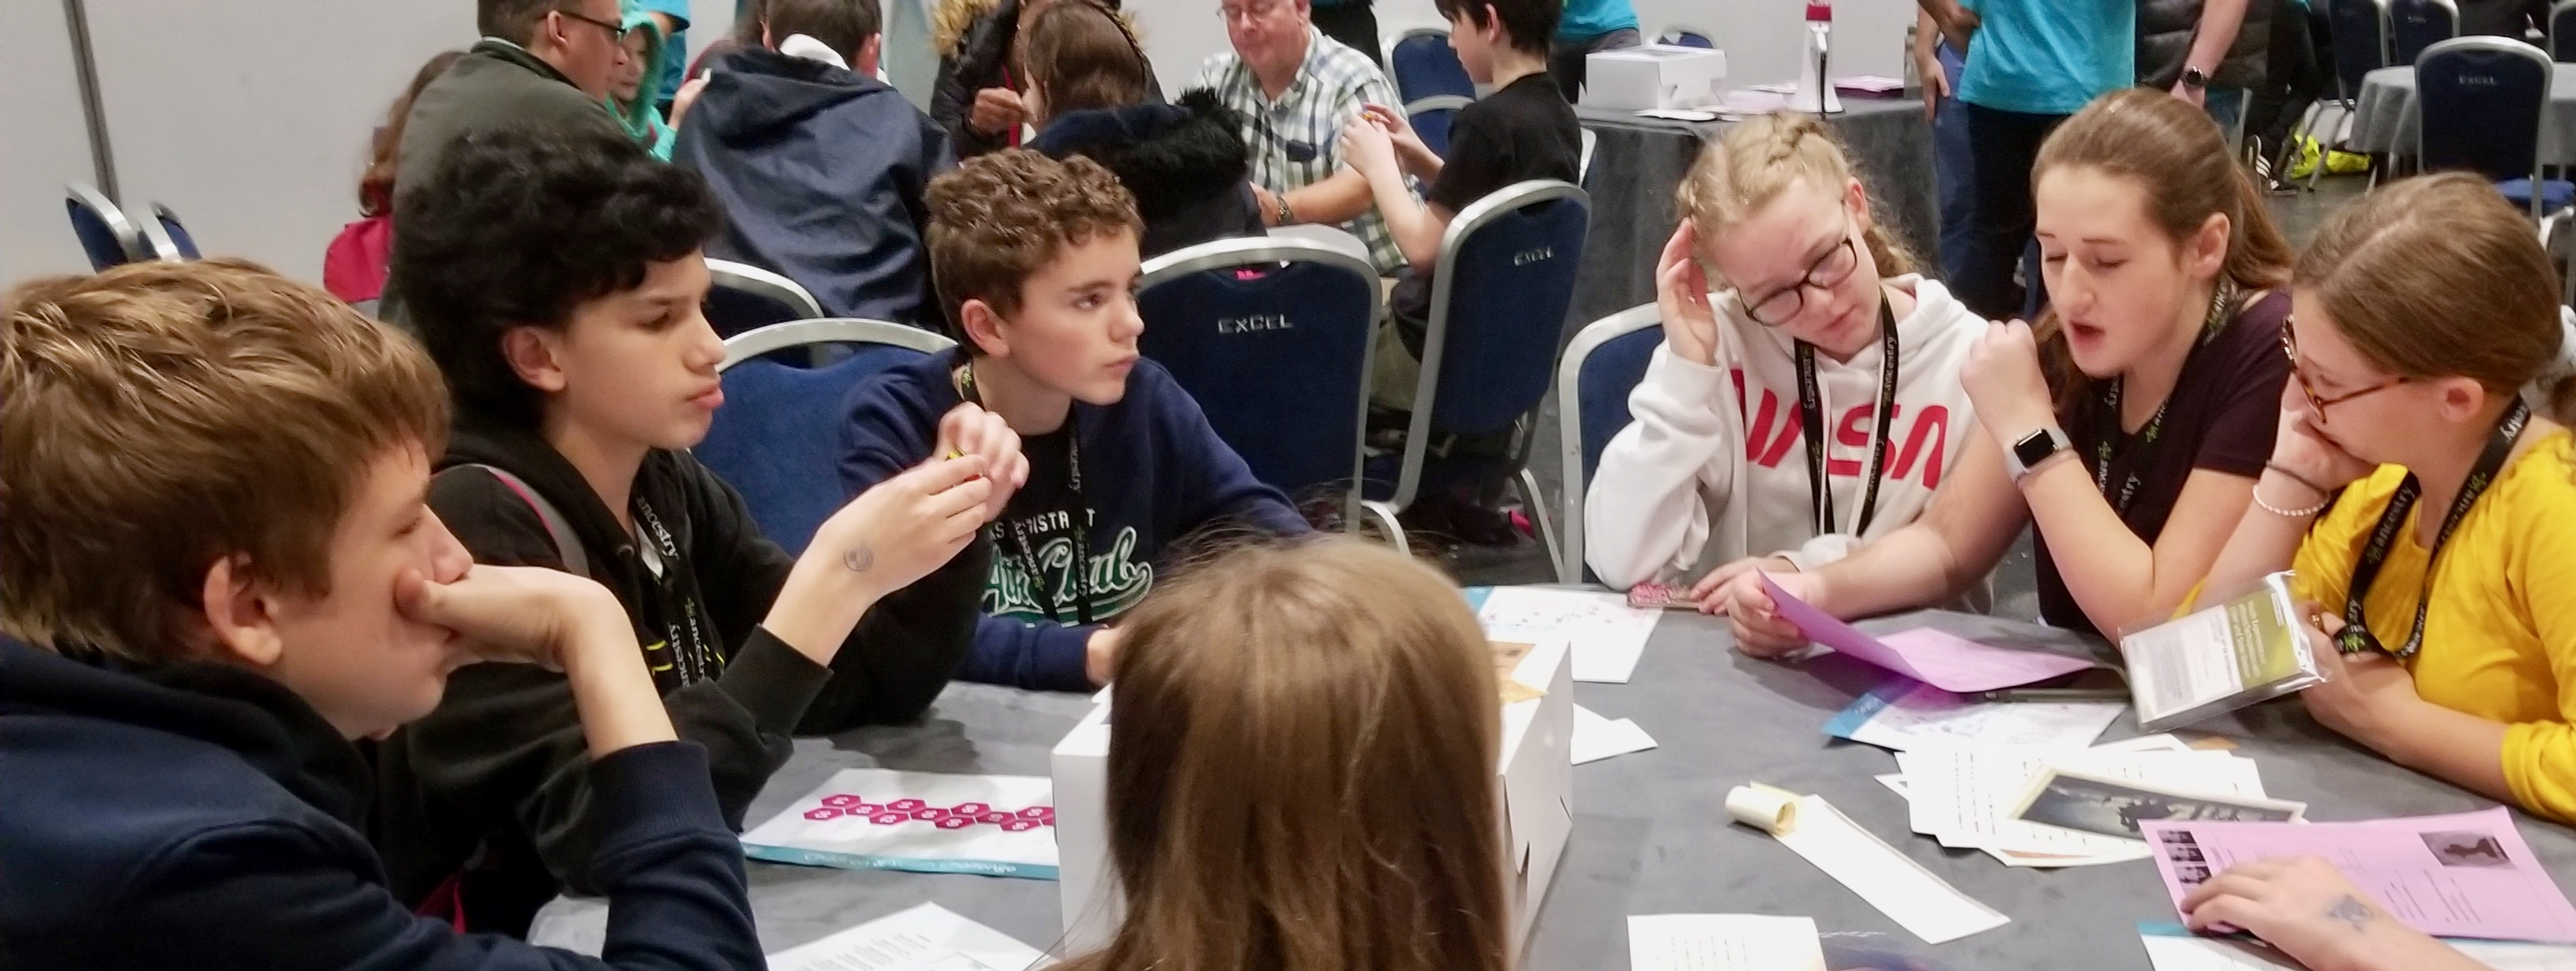 Youth participate in a family history-themed escape-room game as a RootsTech London discovery activity on Oct. 26, 2019.